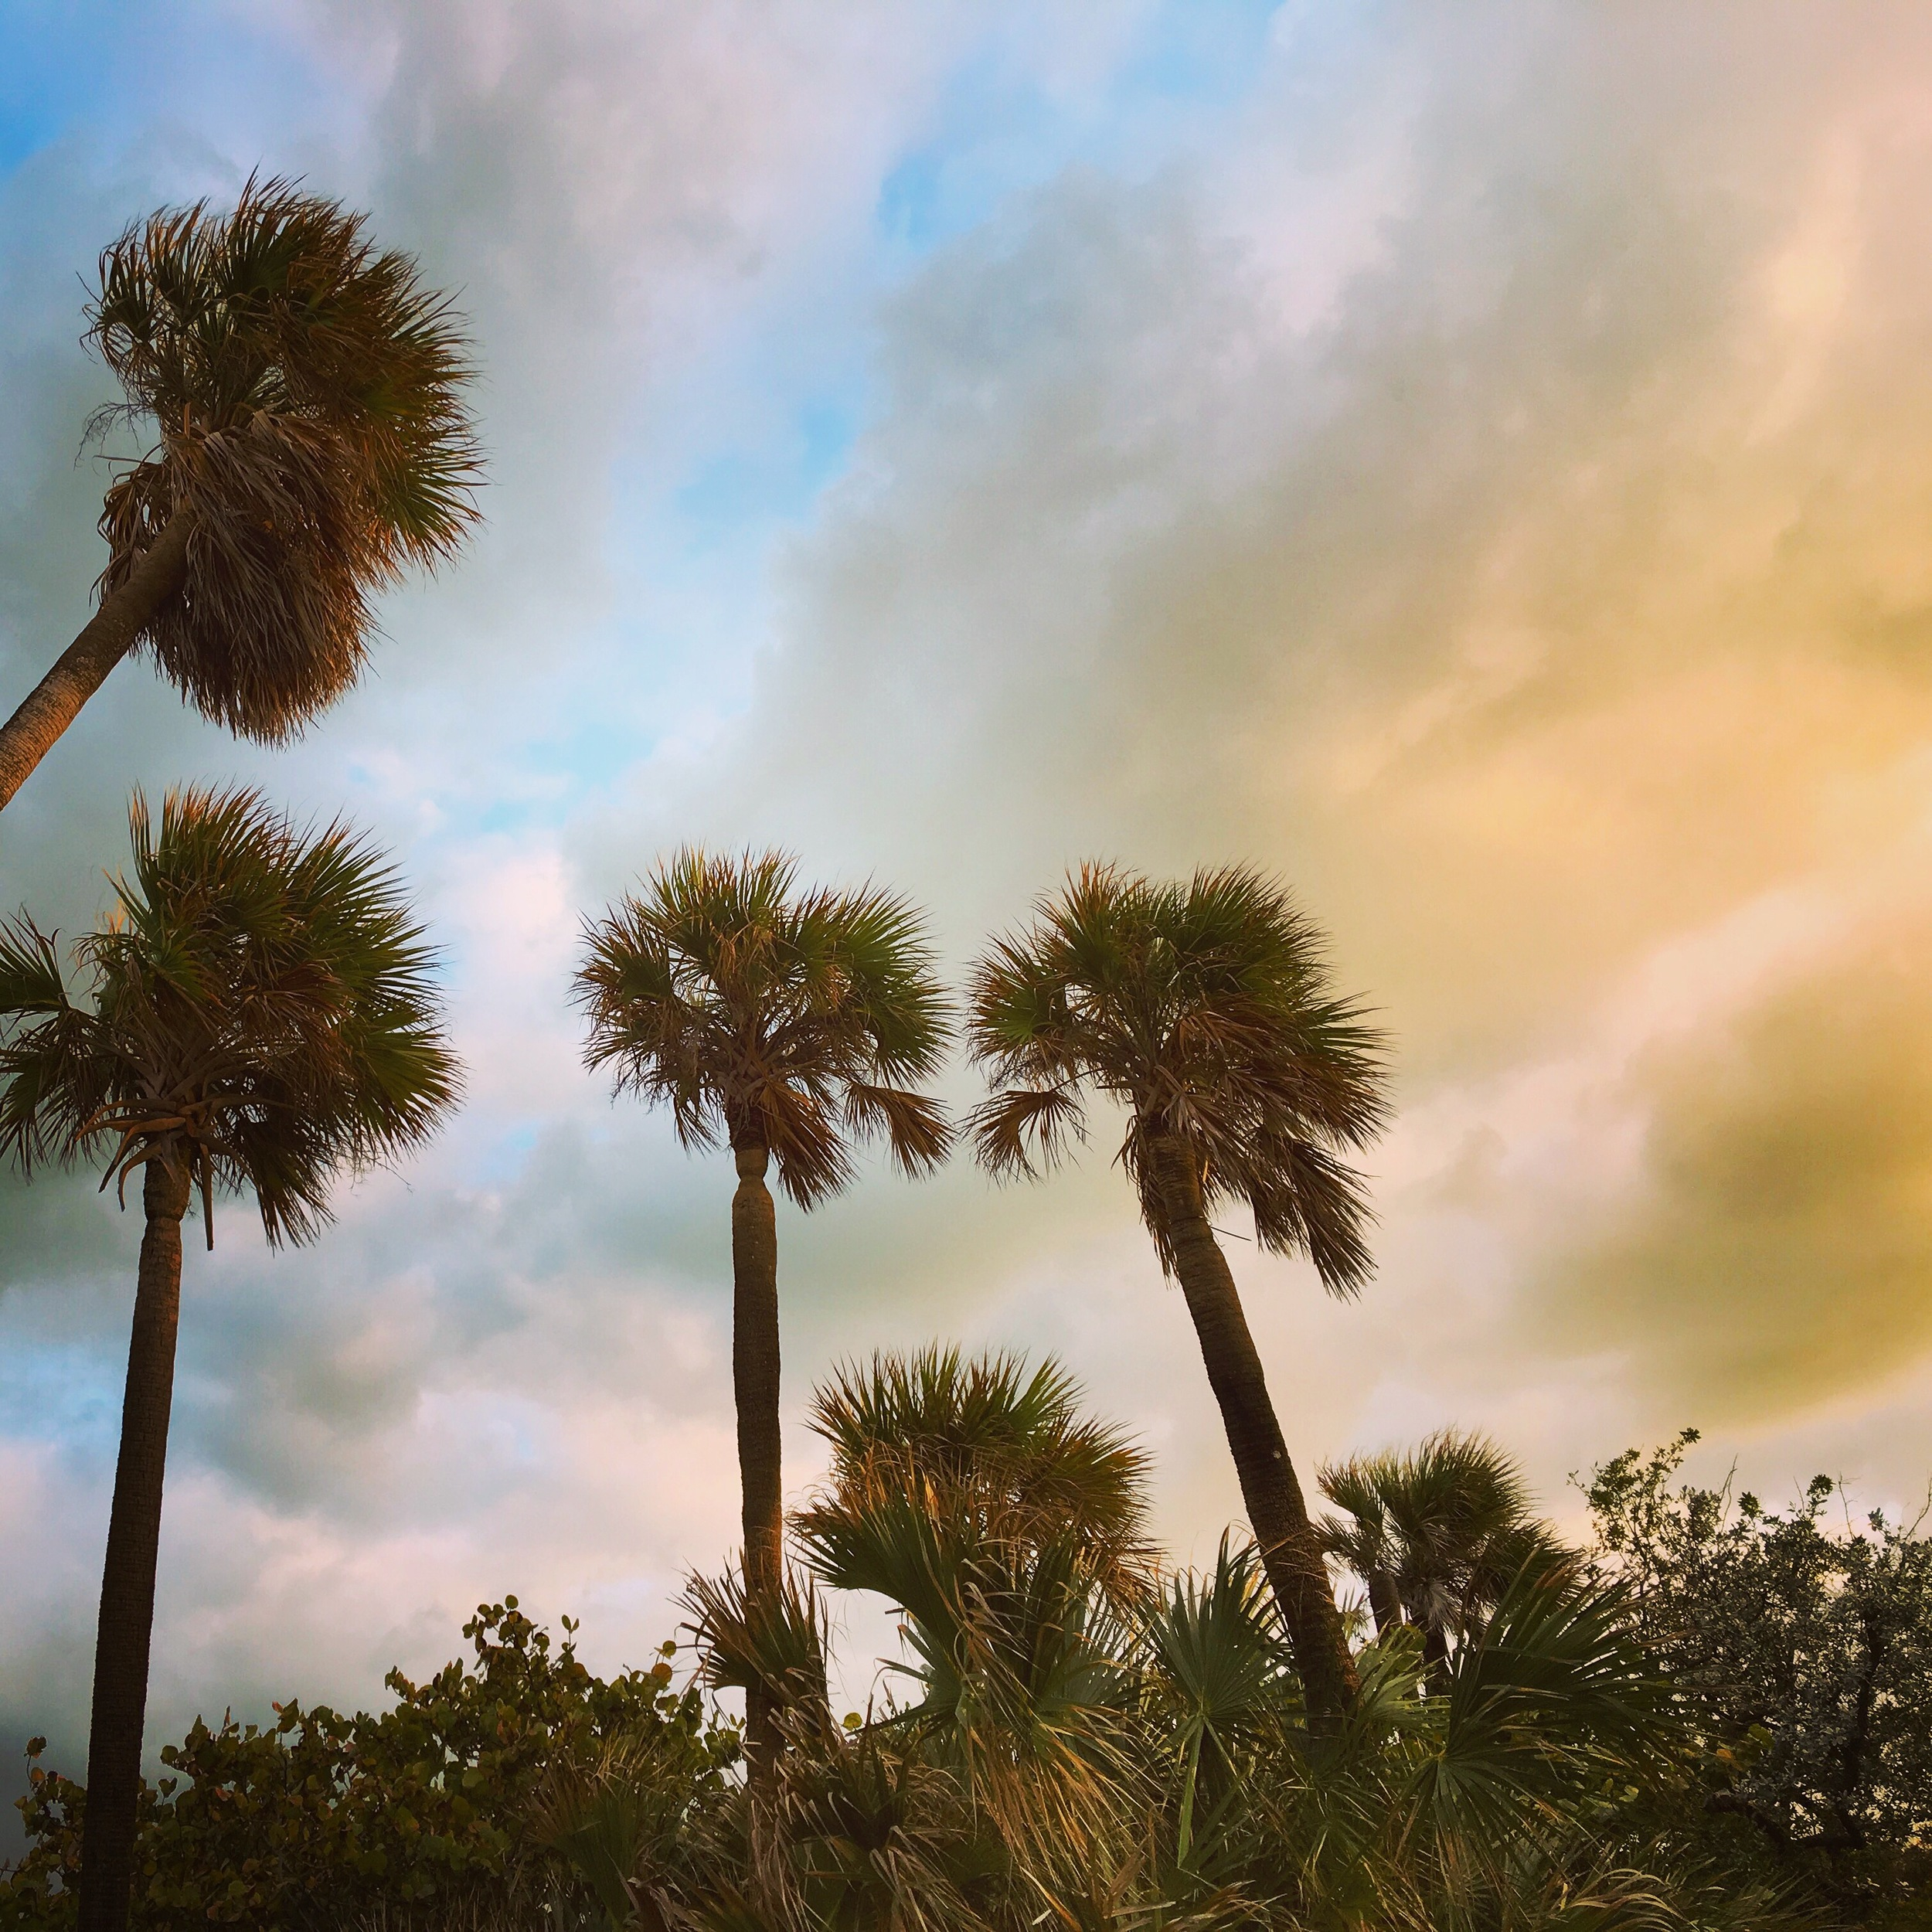 Daytripper365-Palm Trees in South Beach.JPG